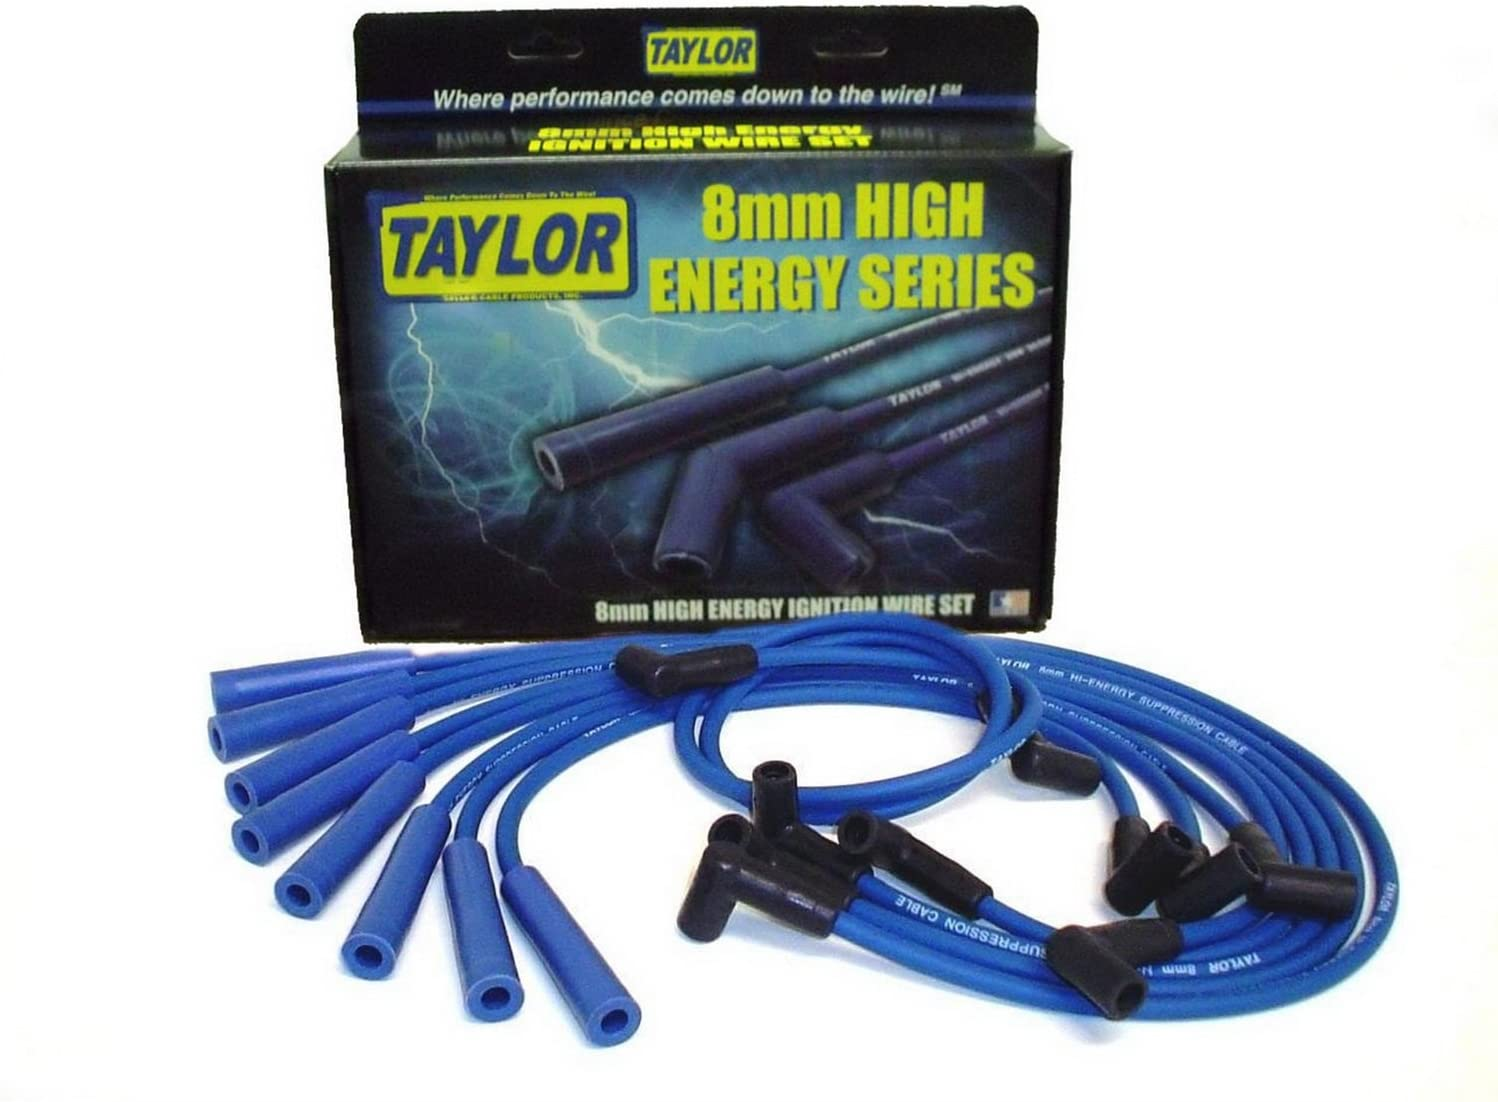 Taylor Indianapolis Mall Cable 64672 Hi-Energy Set Industry No. 1 Spark Wire Plug